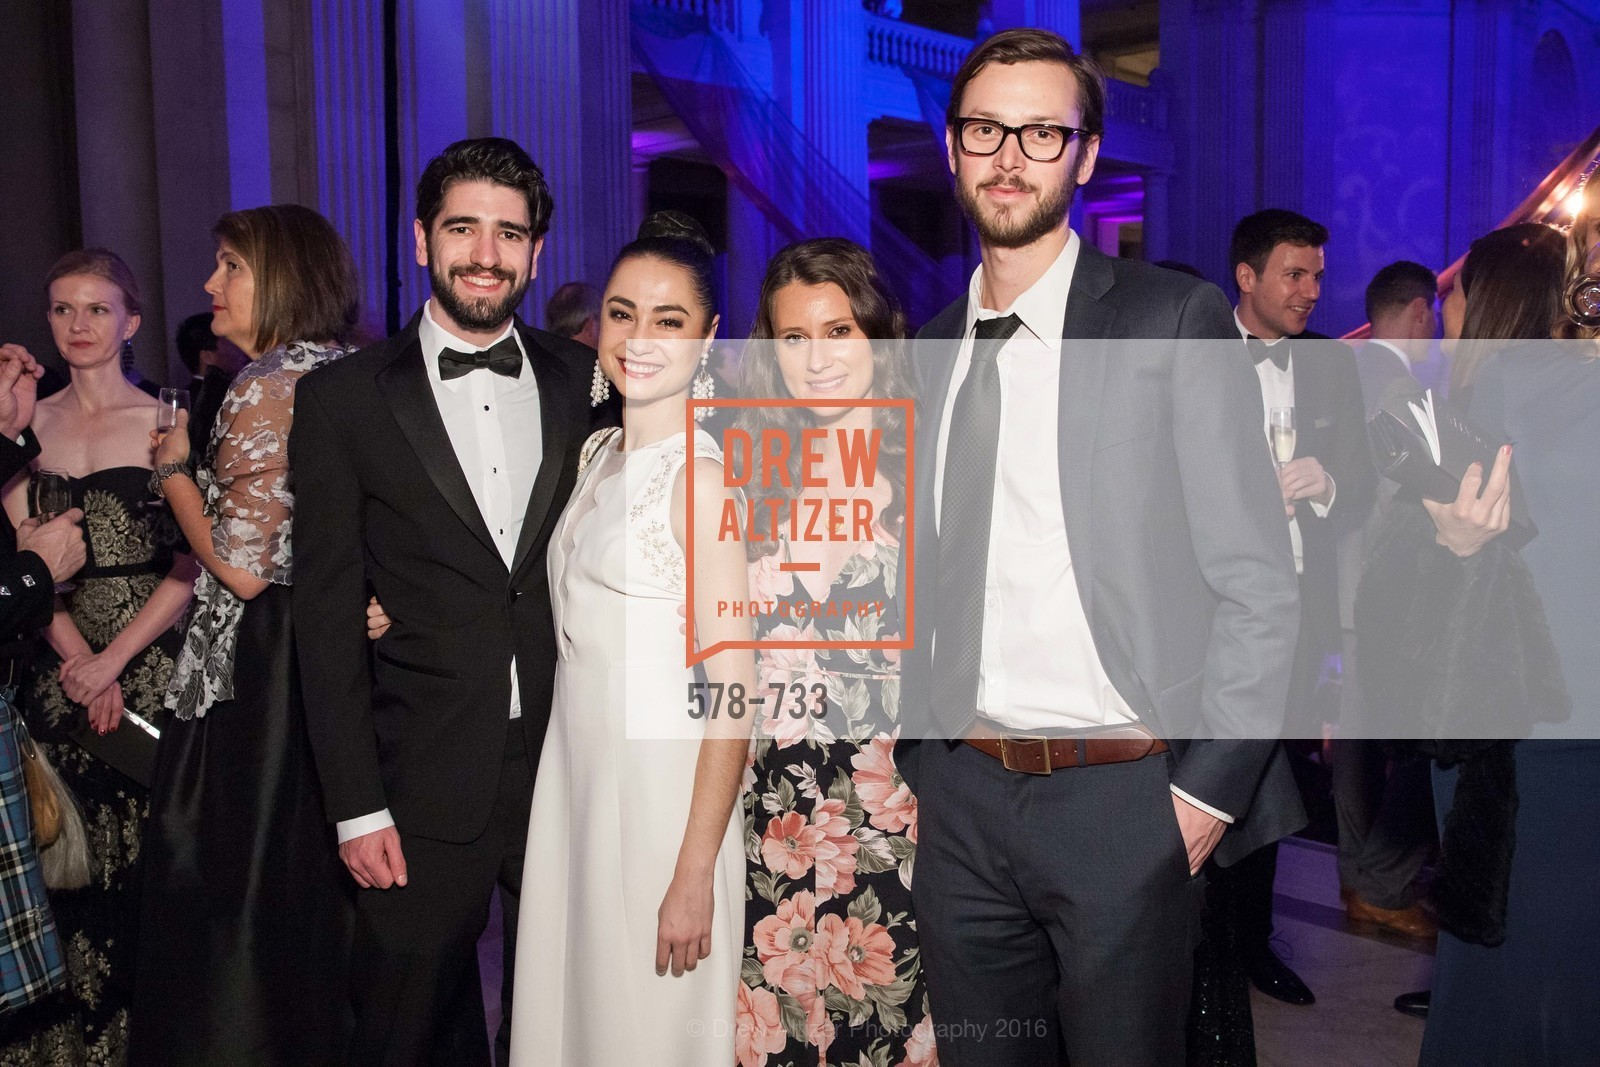 Joshua Pratman, Matilde Sloustey, Renee Schomp, Zack Sumner, San Francisco Ballet 2016 Opening Night Gala, San Francisco City Hall. 1 Dr Carlton B Goodlett Pl, January 21st, 2016,Drew Altizer, Drew Altizer Photography, full-service agency, private events, San Francisco photographer, photographer california